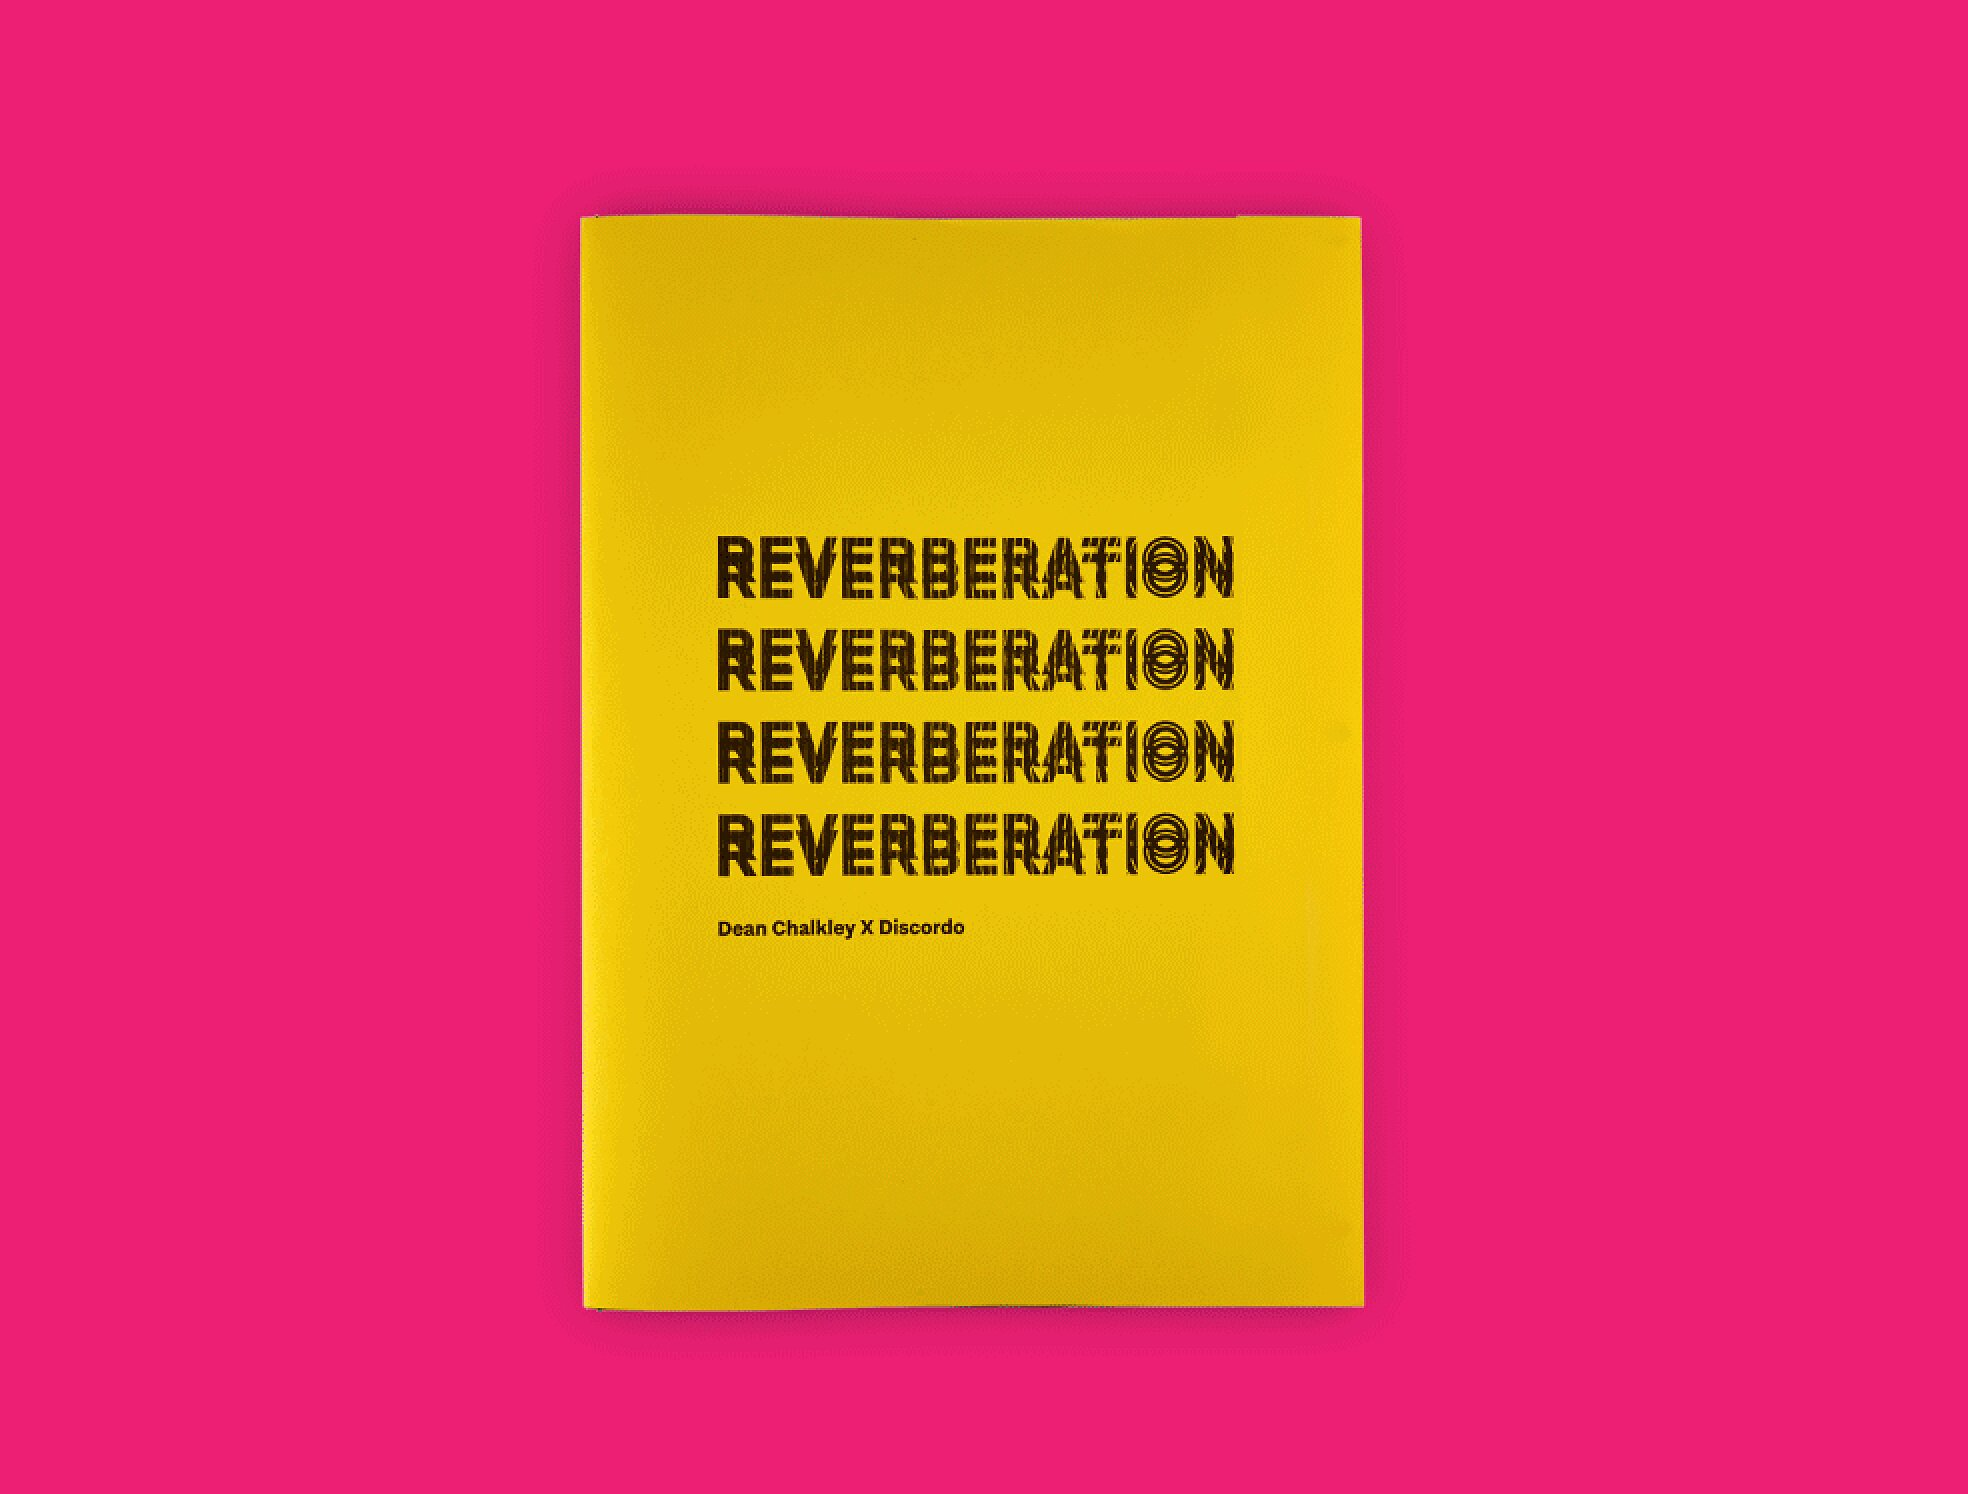 Reverberation: Publication available from Y-Junction Book